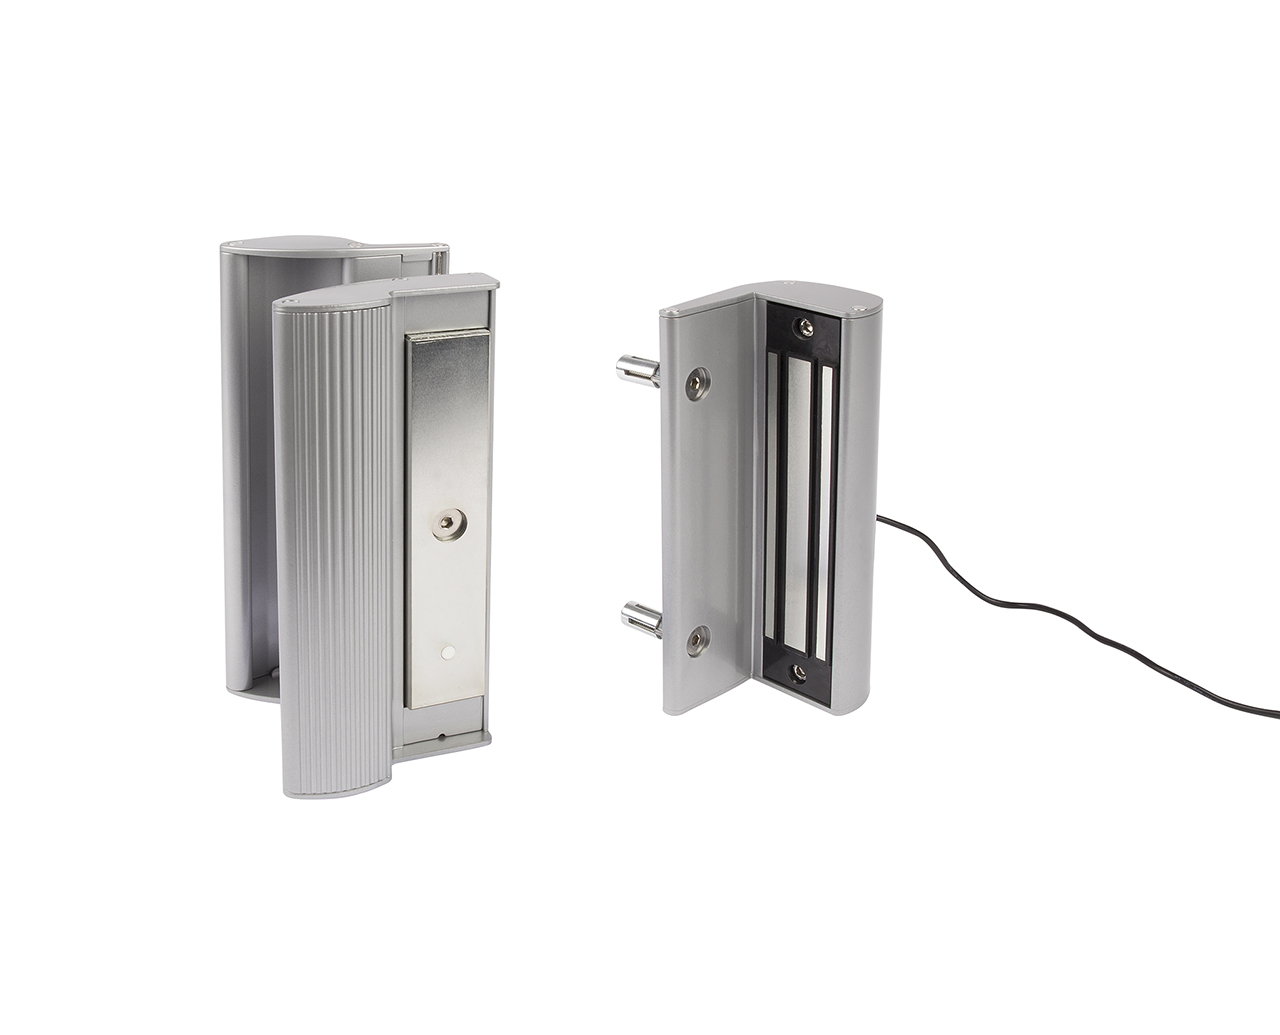 MAG 2500 Magnetic Gate Lock